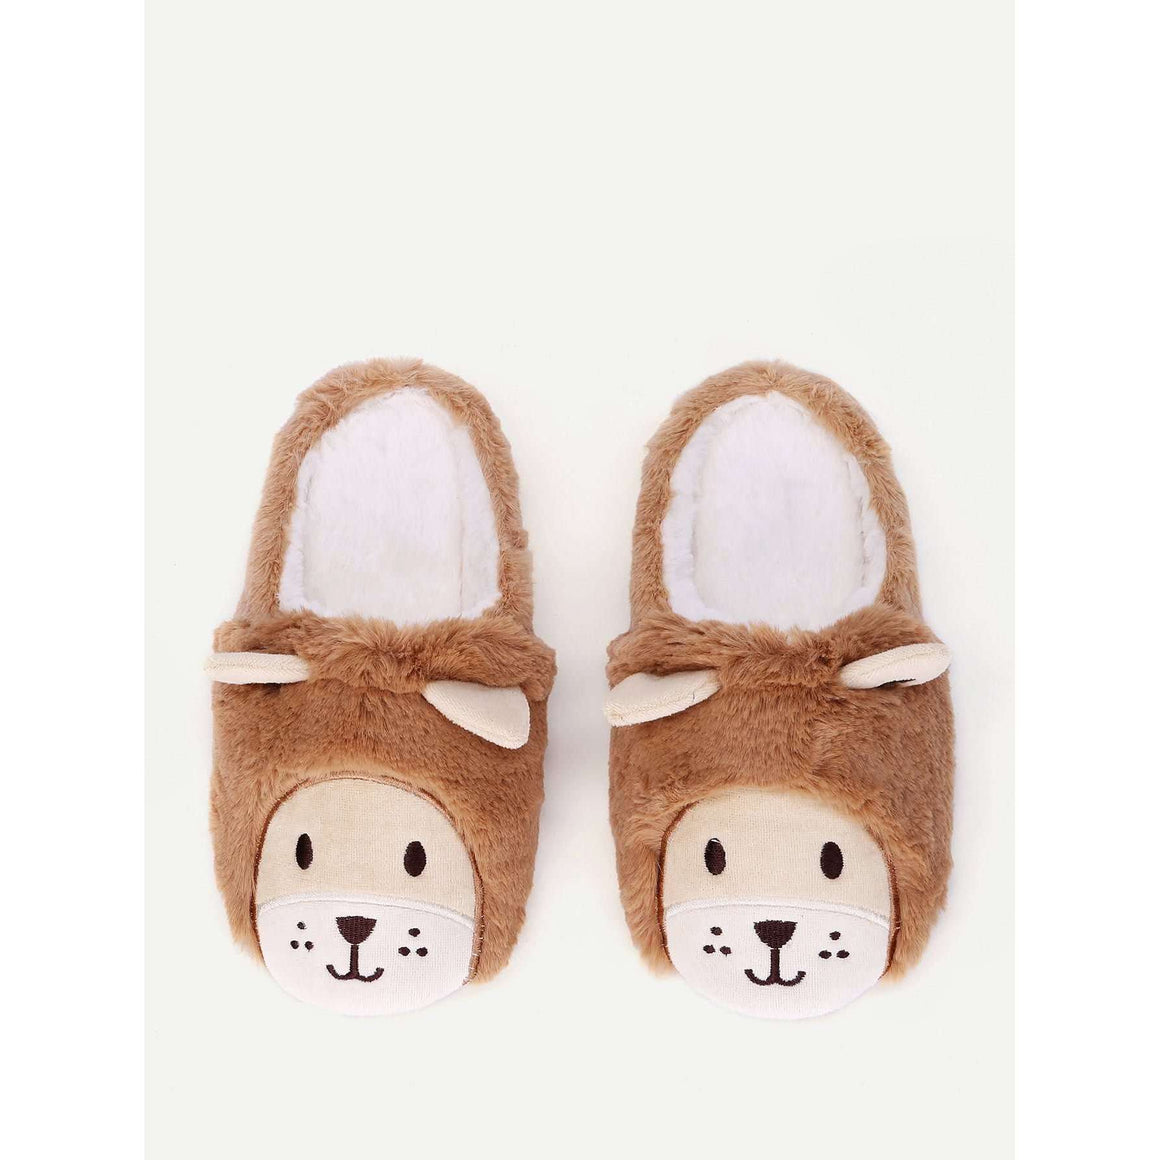 CLOCHE Cuteness Overloaded Slippers-CLOCHE-CLOCHE